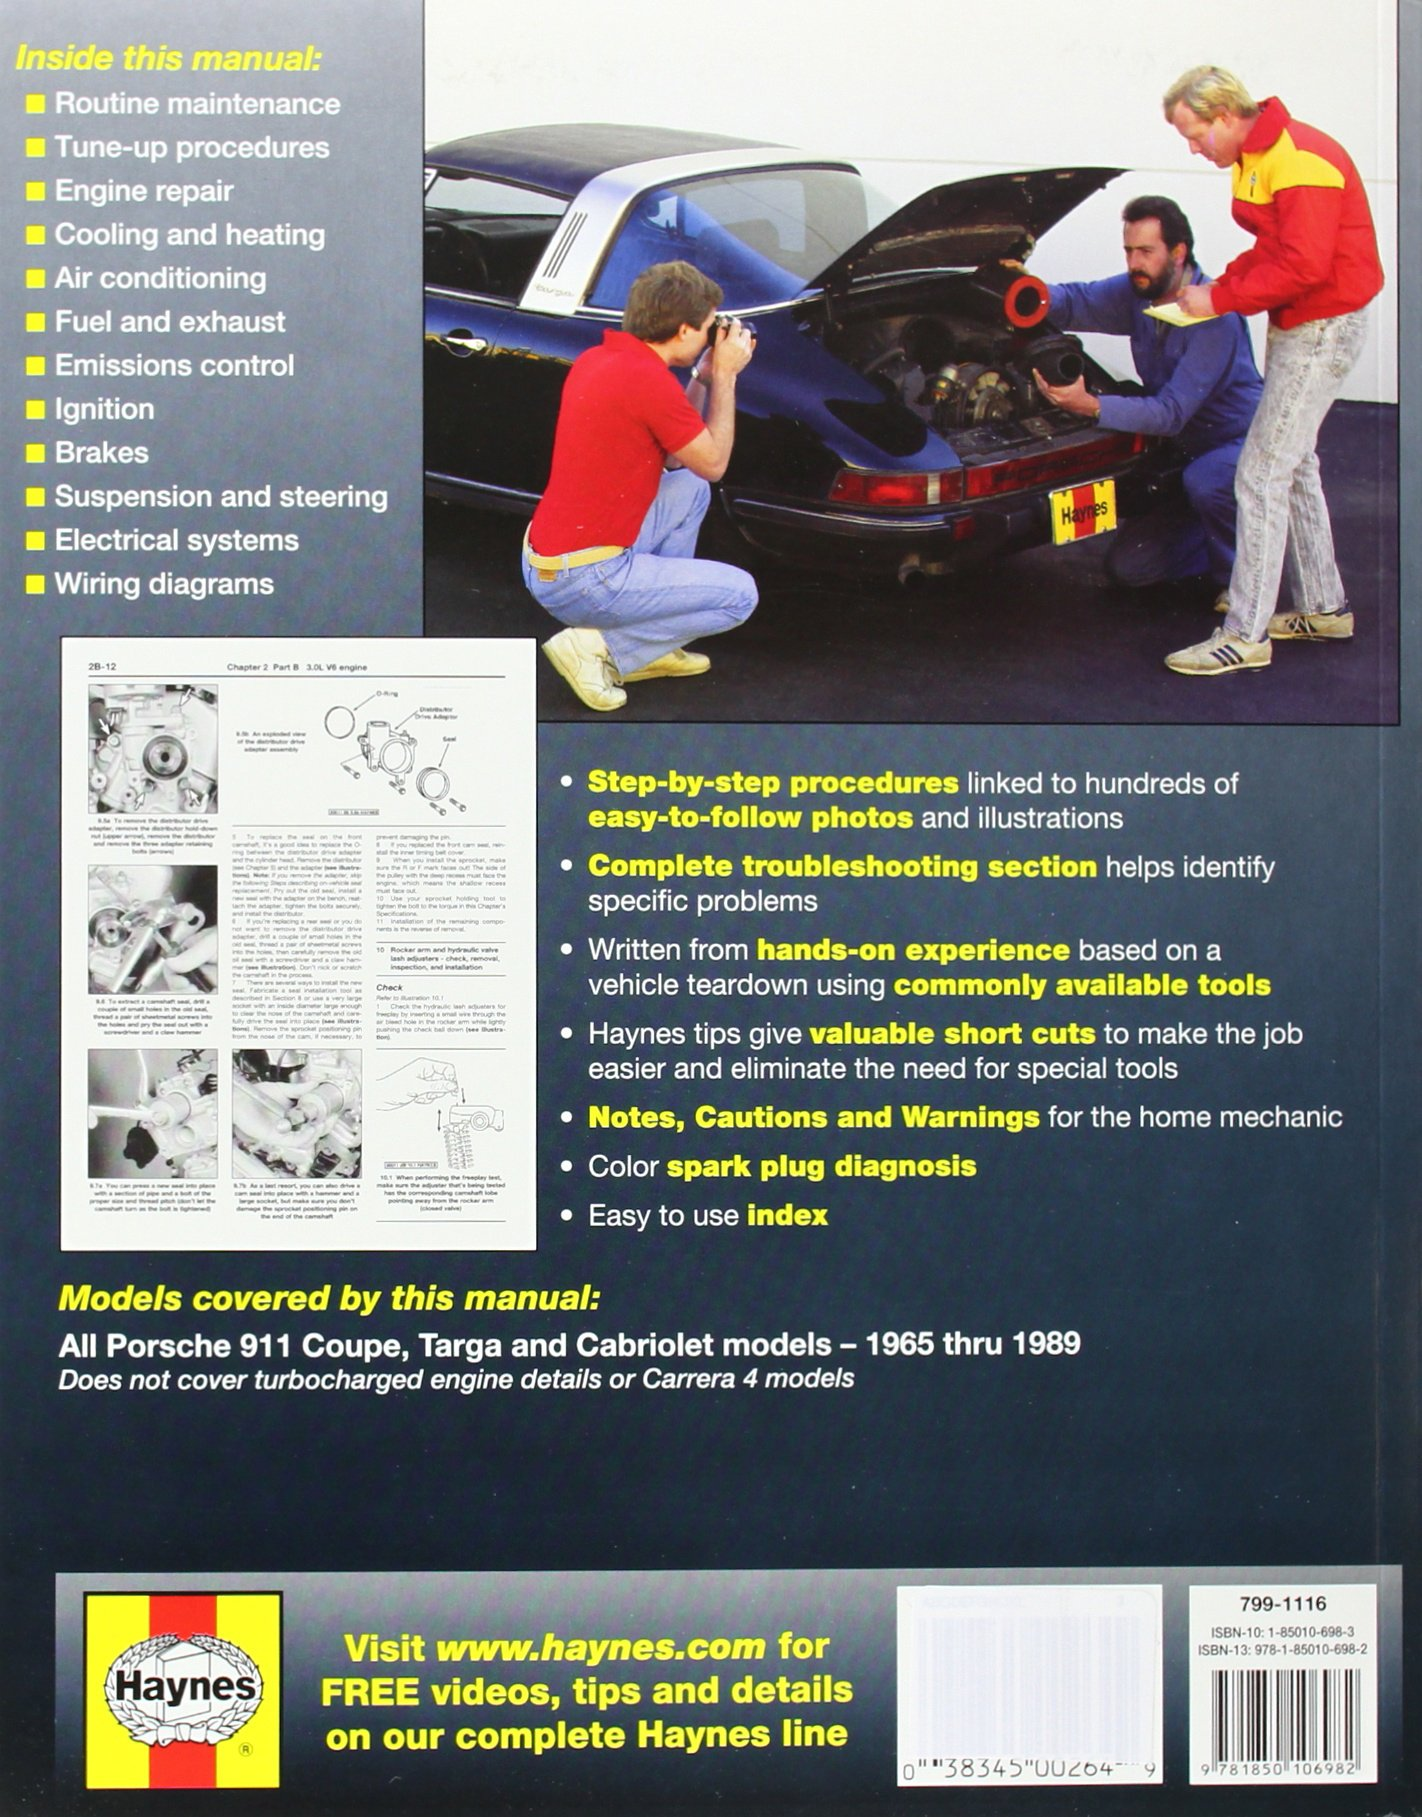 Porsche Brakes Diagram 911 Automotive Repair Manual 1965 To 1989 Coupe Targa Cabriolet Haynes 0038345002649 Books